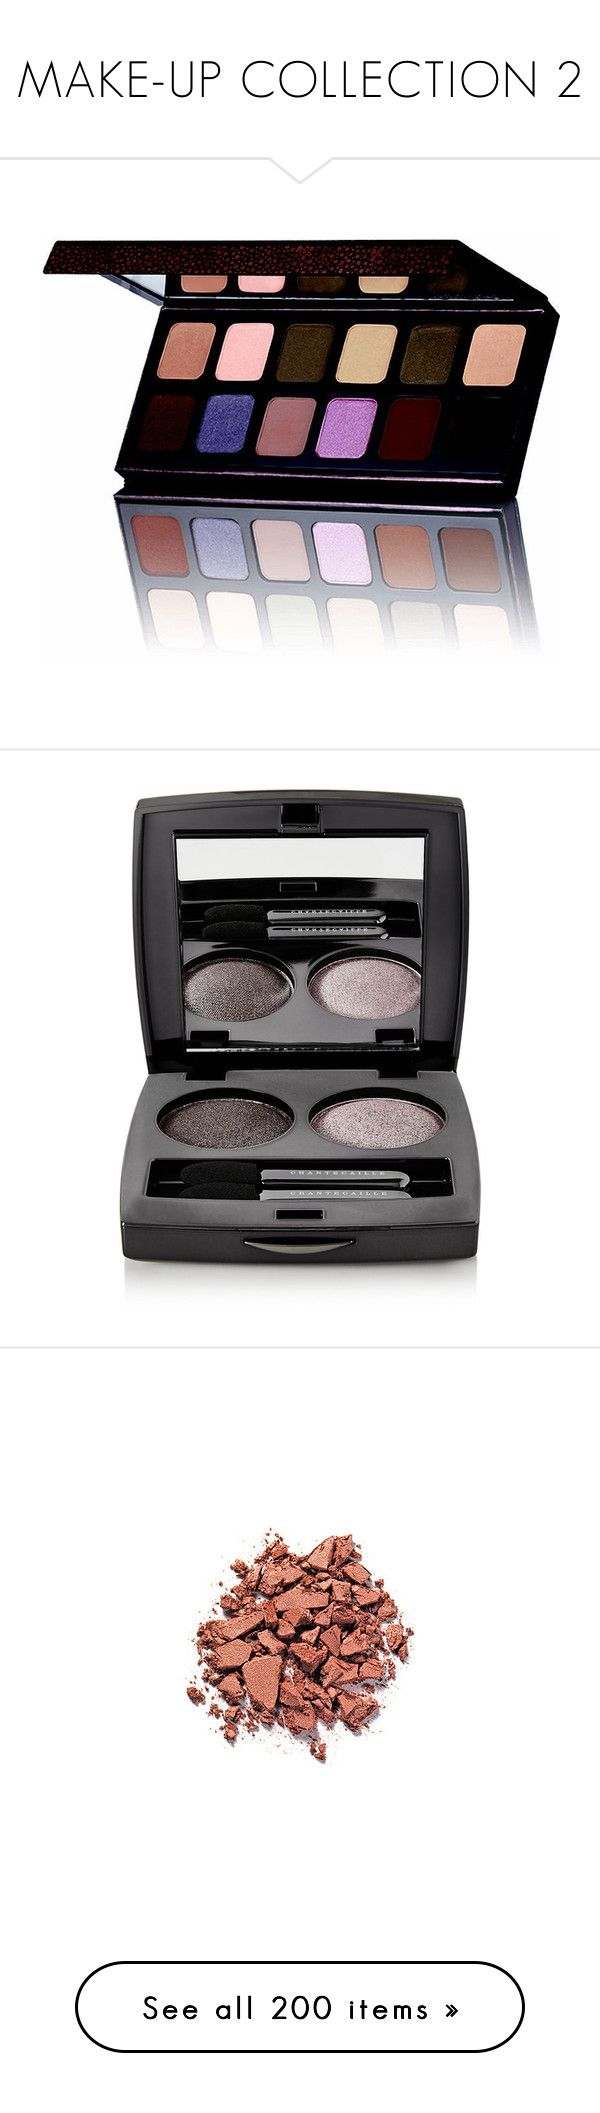 """MAKE-UP COLLECTION 2"" by wanda-india-acosta ❤ liked on Polyvore featuring beauty products, makeup, eye makeup, eyeshadow, apparel & accessories, extreme neutrals, palette eyeshadow, laura mercier eye shadow, laura mercier eyeshadow and laura mercier eye makeup"